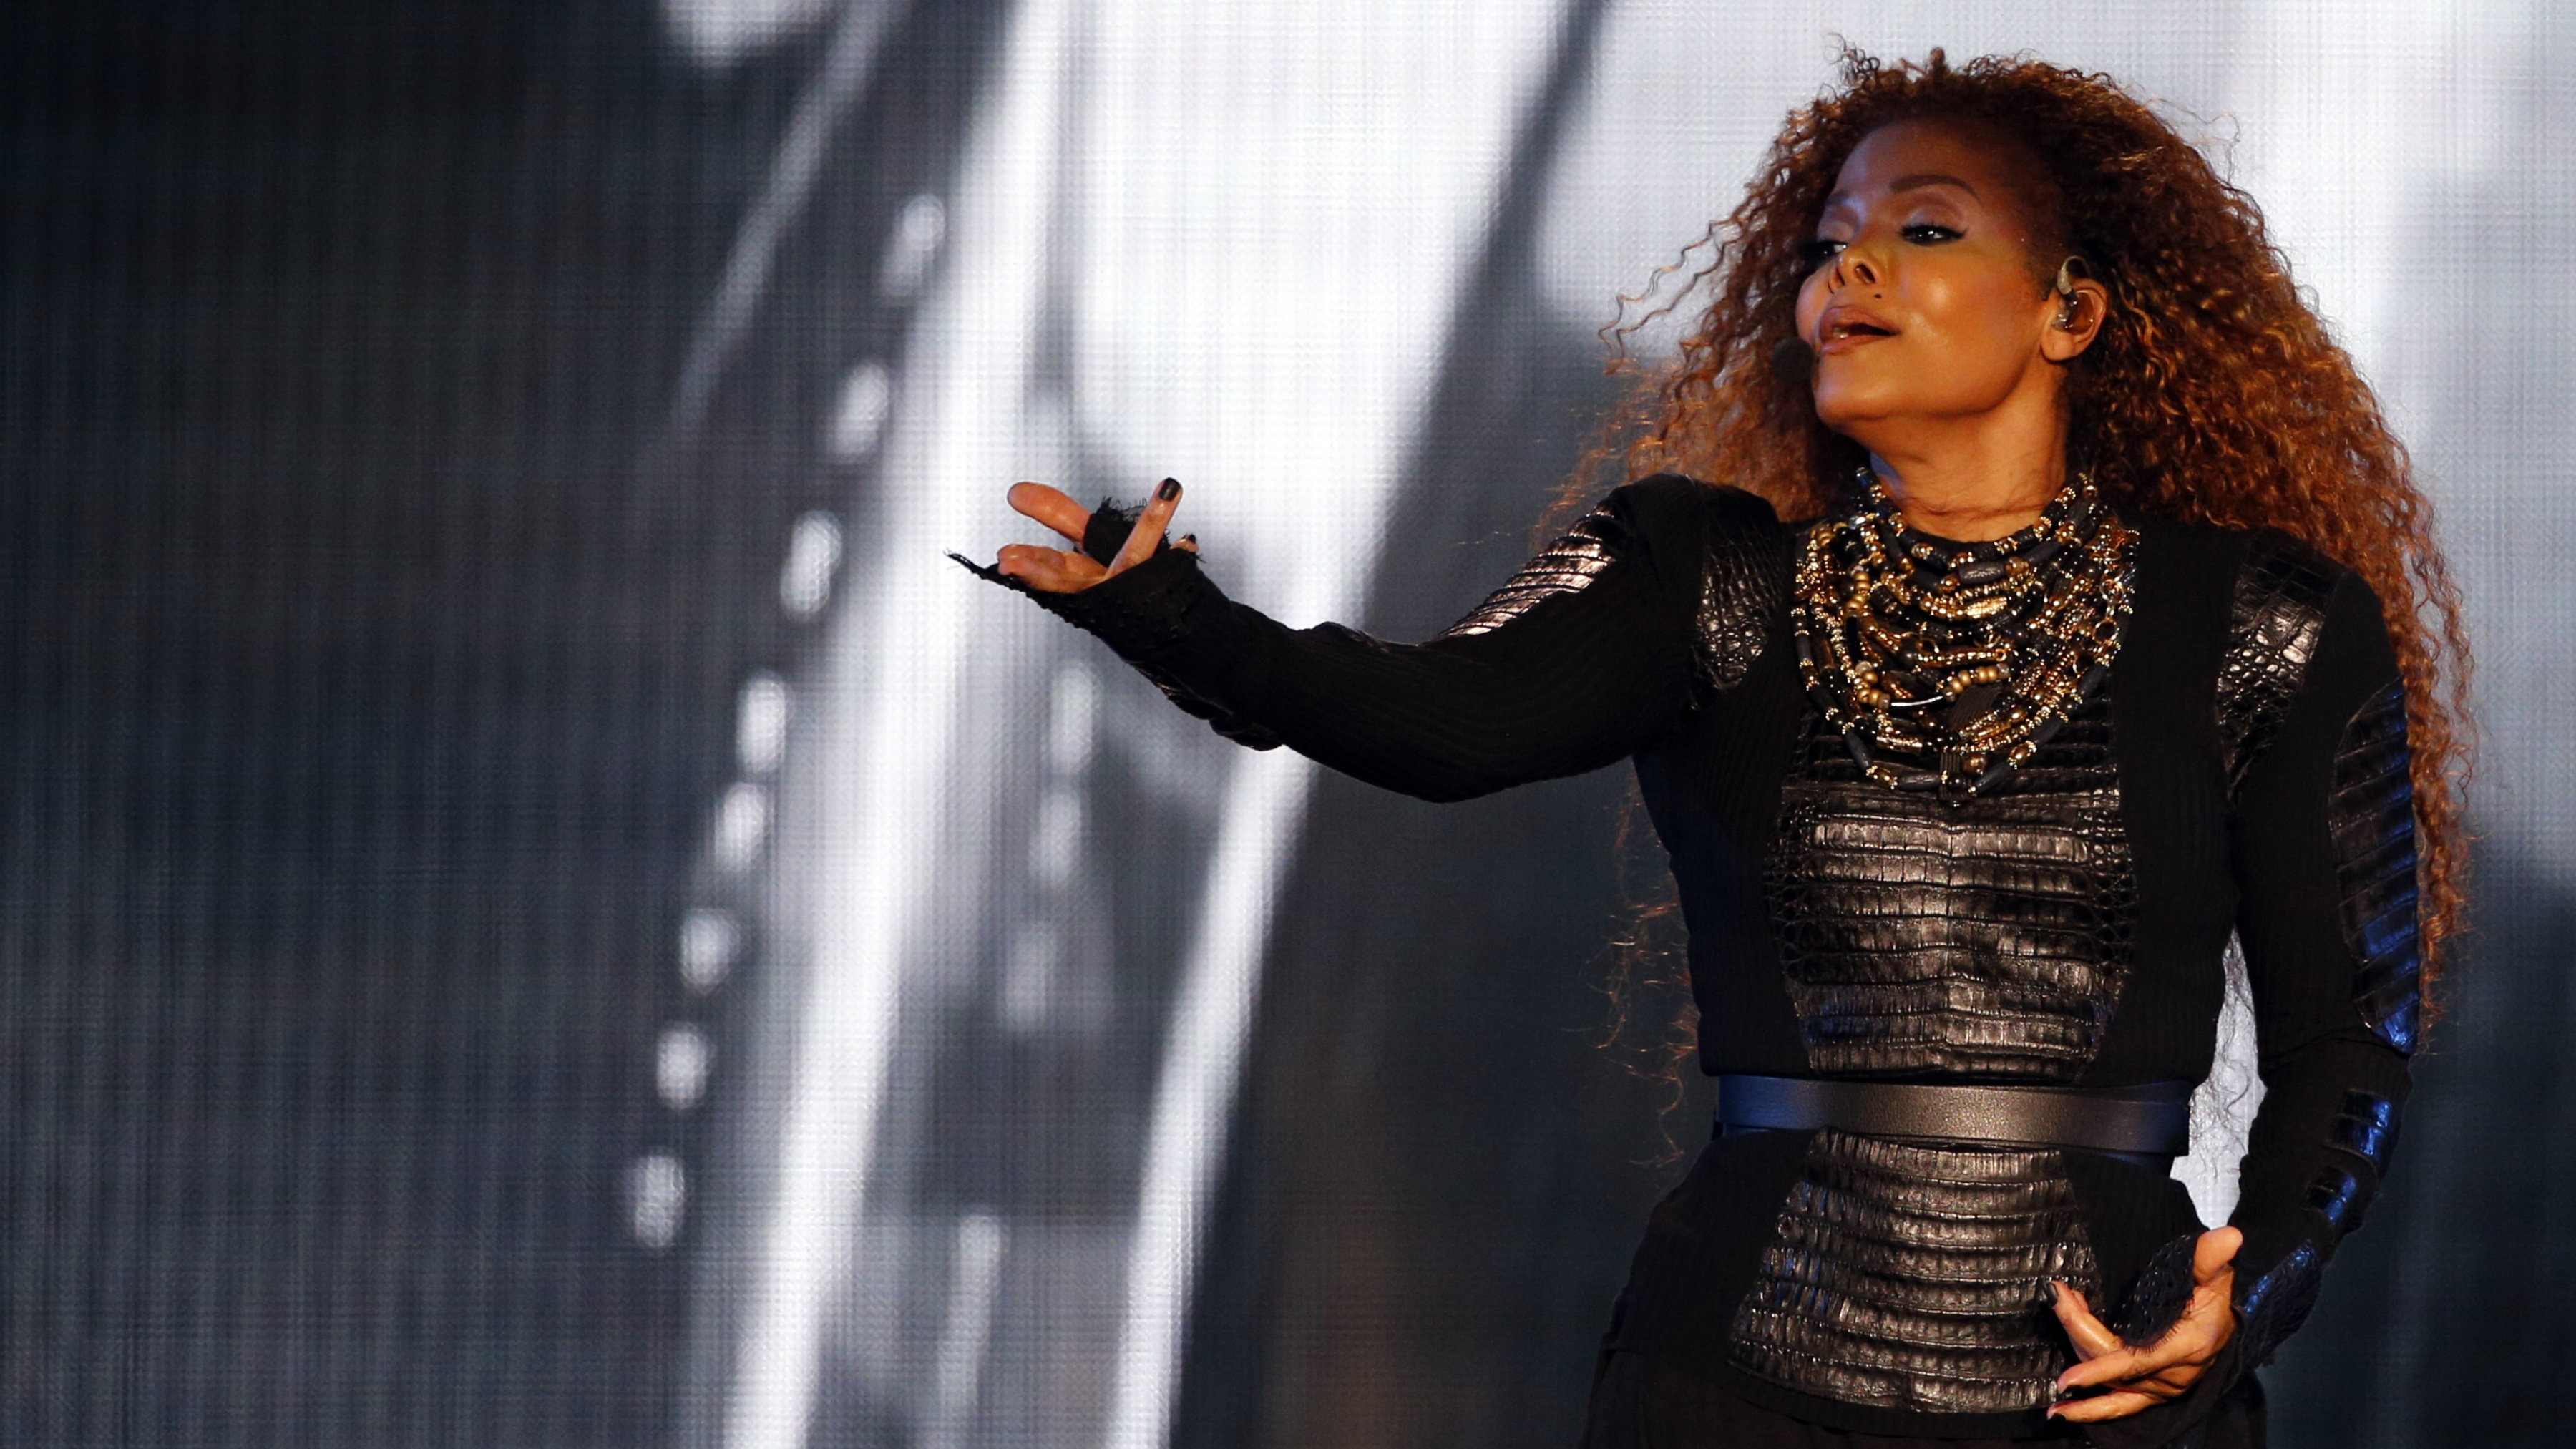 Janet Jackson is separating from her husband months after giving birth pics